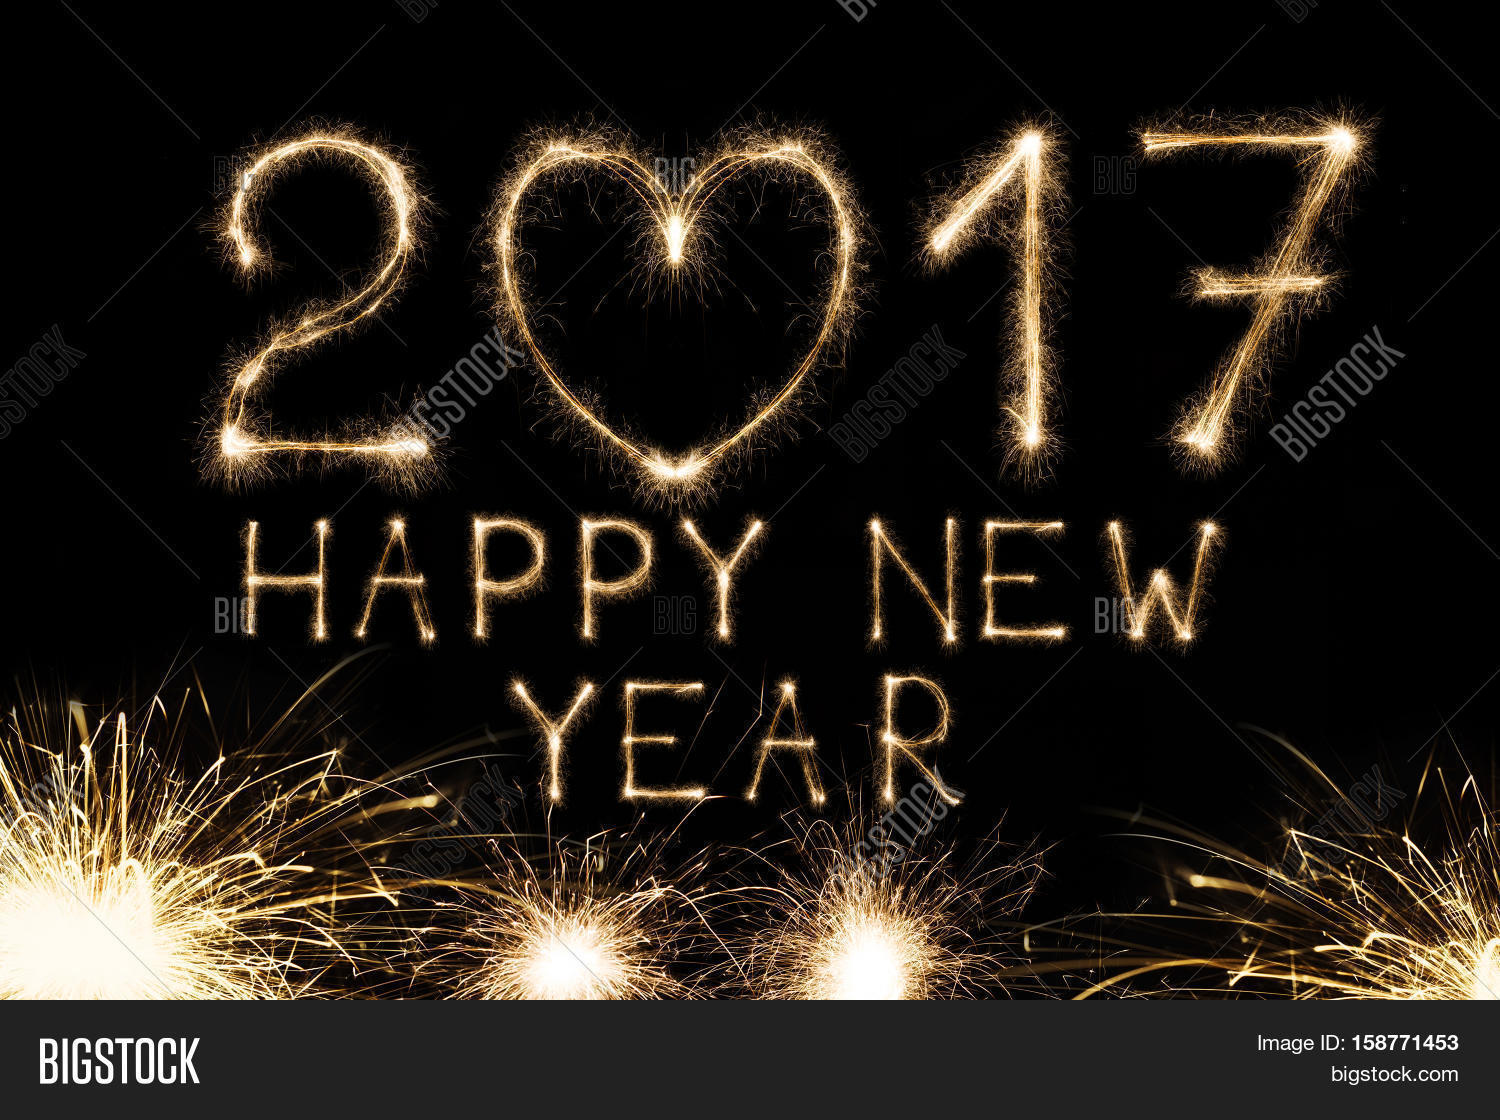 2017 New Year Text Image Photo Free Trial Bigstock